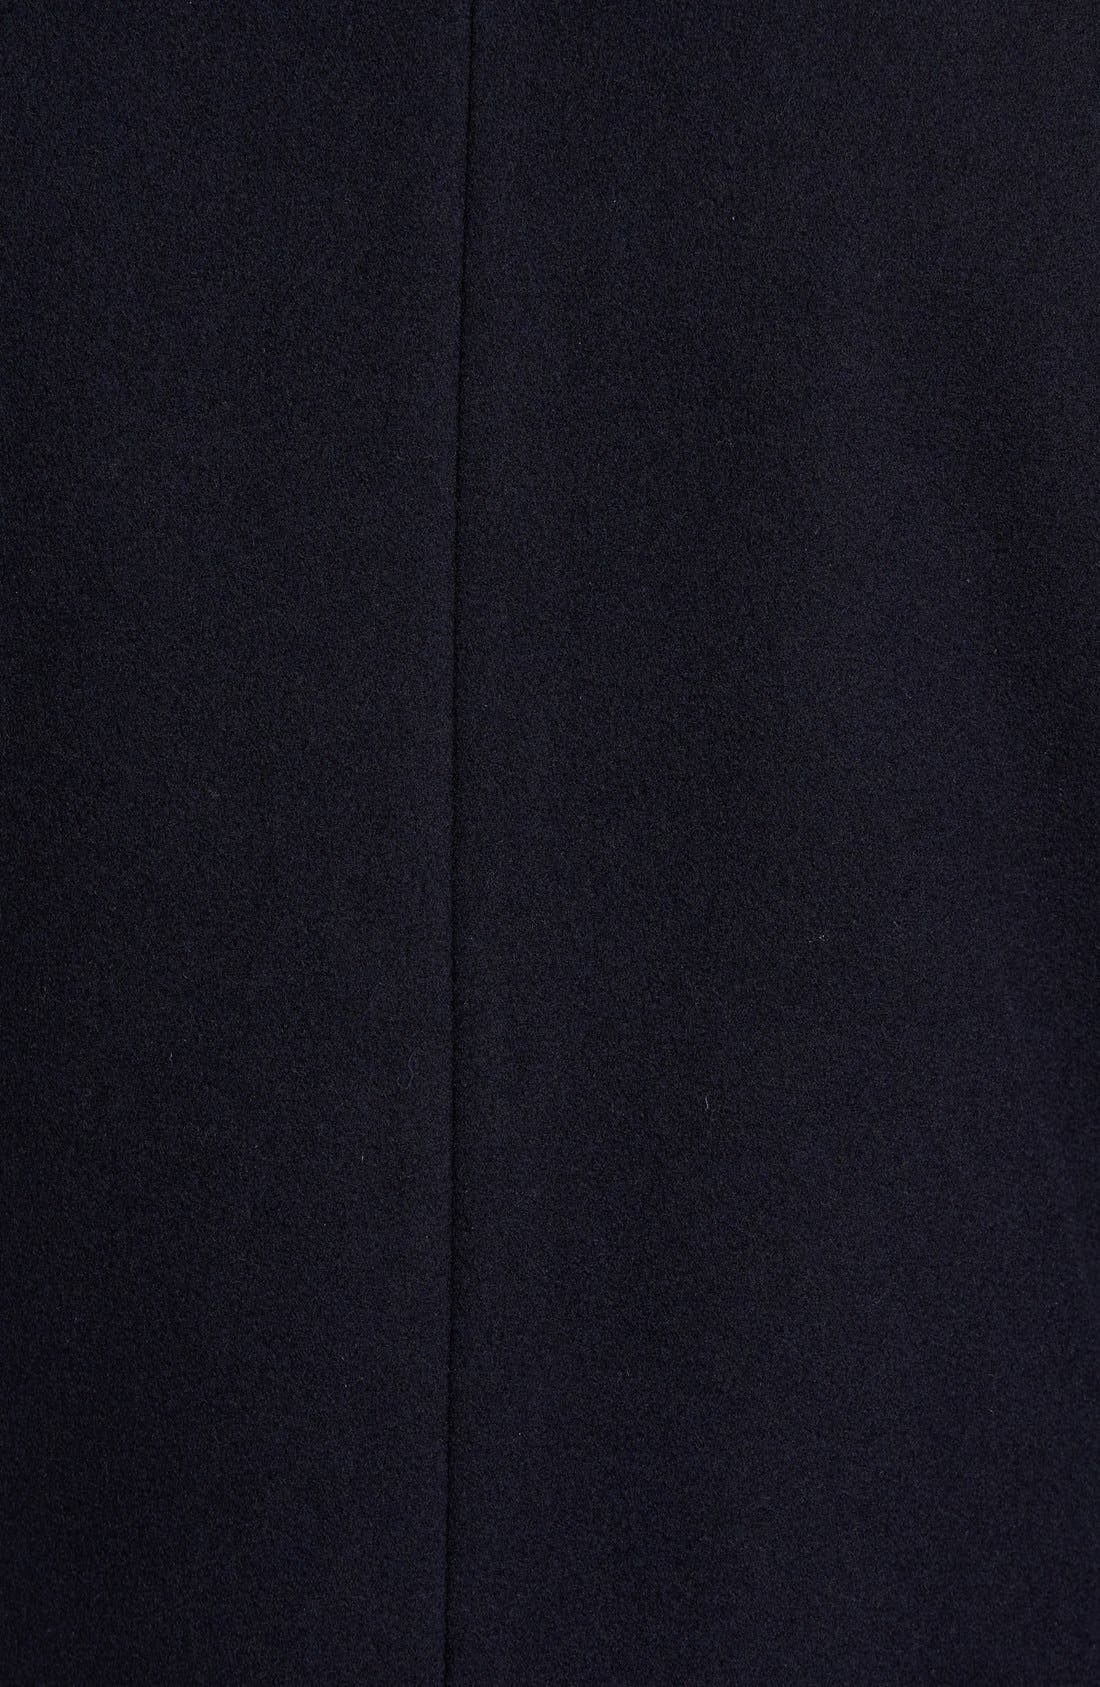 VINCE CAMUTO,                             Classic Wool Blend Car Coat with Inset Bib,                             Alternate thumbnail 6, color,                             NAVY